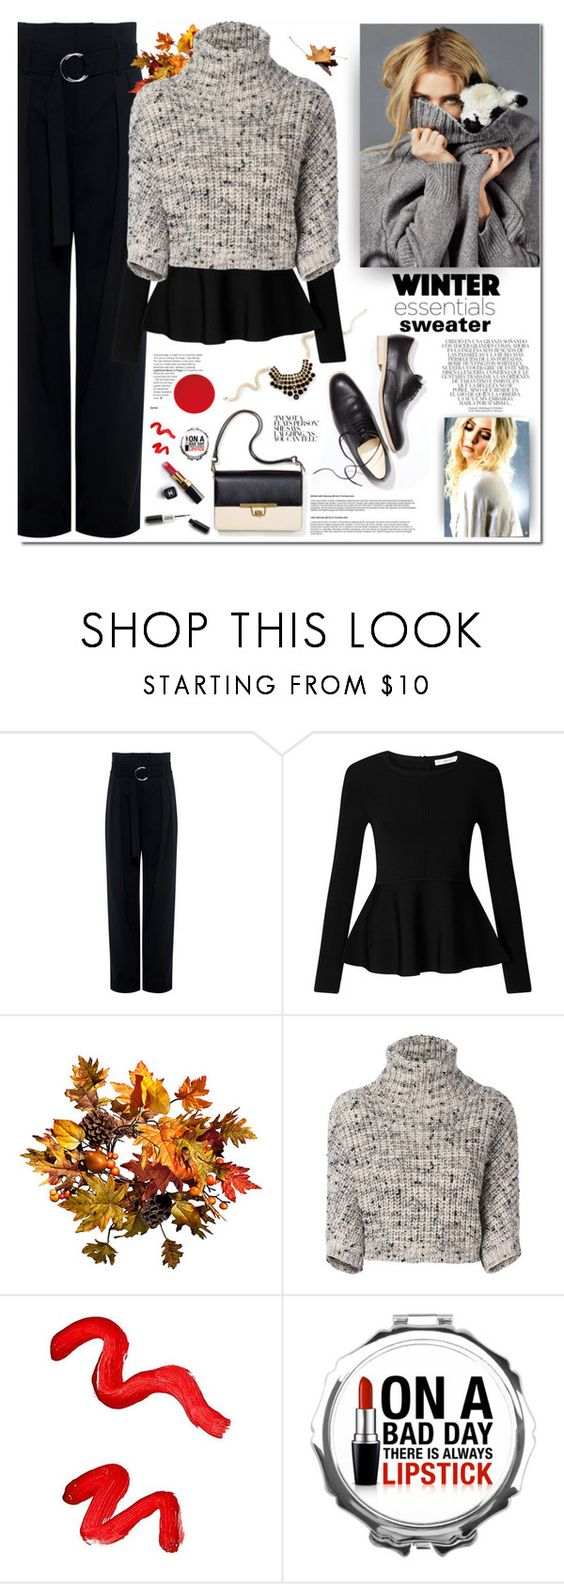 """""""SWEATER WEATHER !"""" by firstclass1 ❤ liked on Polyvore featuring IRO, John Lewis, Improvements, Brunello Cucinelli, Whiteley, Chanel, Topshop, Sweater, fallfashion and falltrend"""